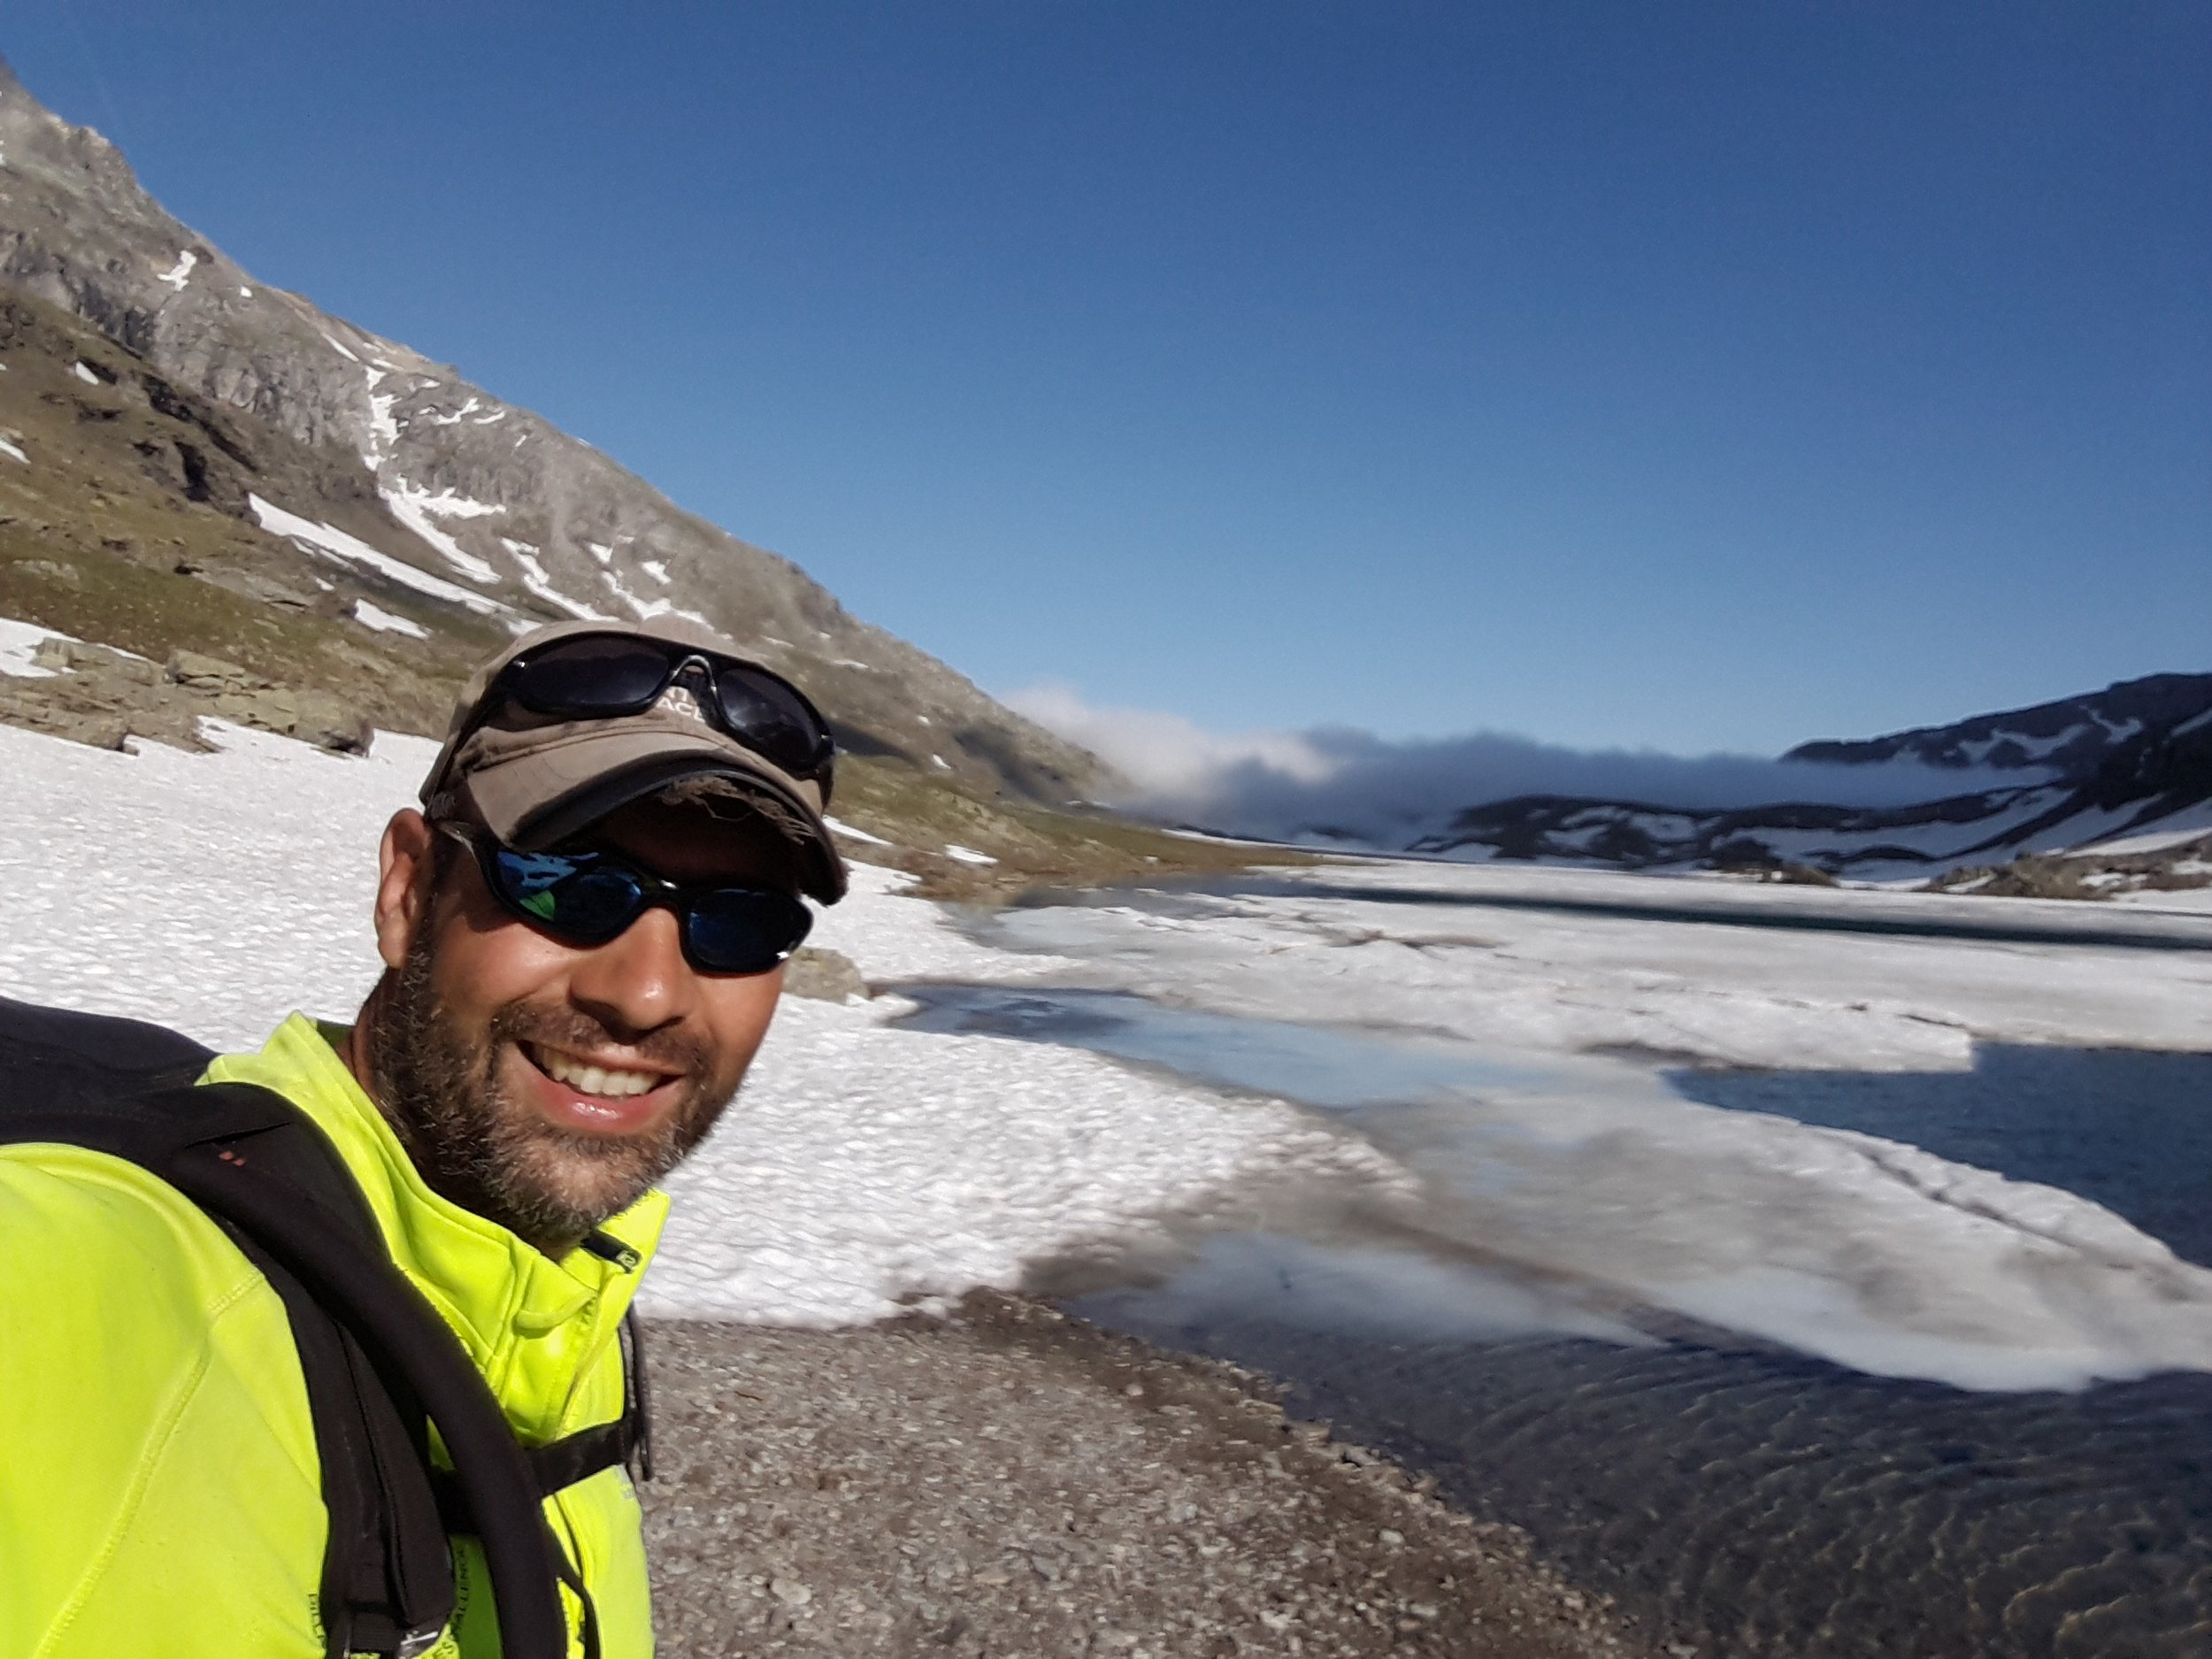 James Dyer has recently returned from a 3 week cycling trip around Europe following Hannibal's route from Cartagena to Turin over the Alps!